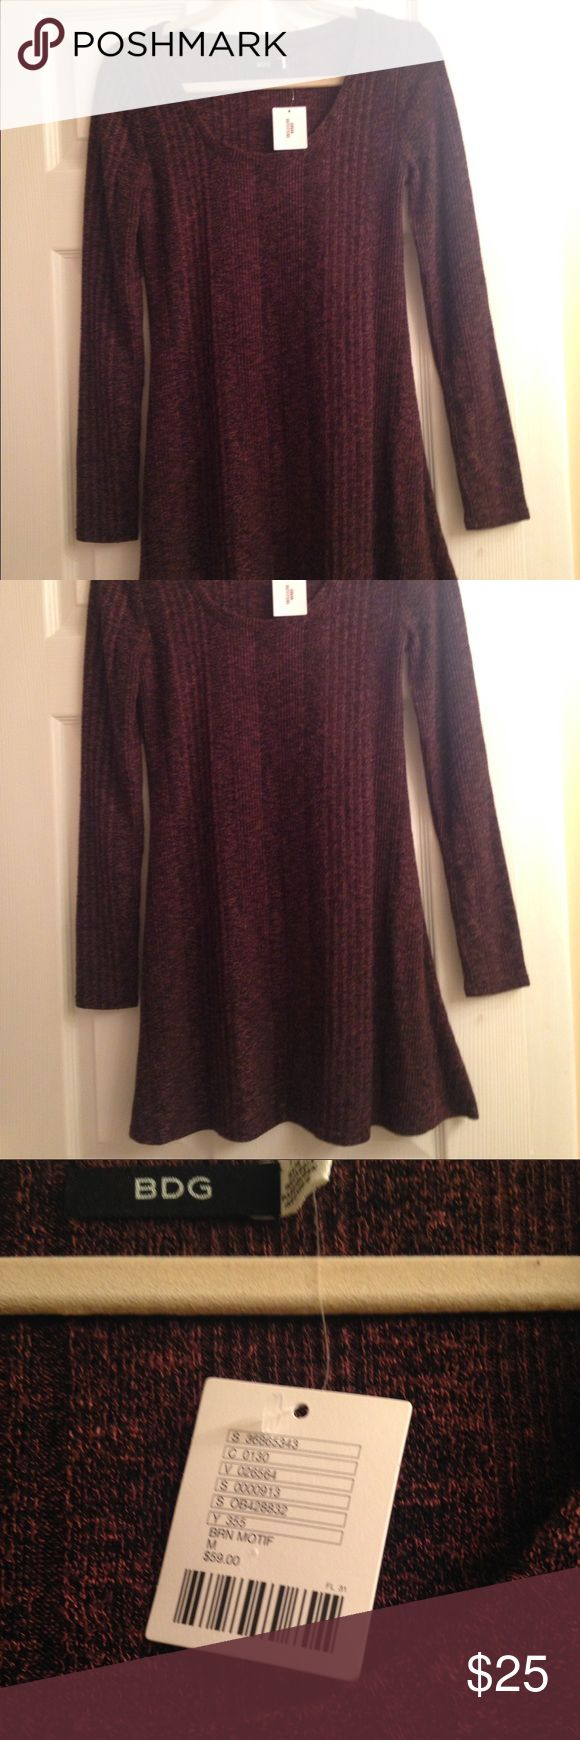 "NWT Urban Outfitters BDG Marled Sweater Dress A brand new, never worn Sweater dress from the urban outfitters brand, BDG. The color is a marled mix of a deep(almost burgundy) brown with black. I am 5'5"" and this hits above the knee on me. The fit is slightly swingy, but fitted around the bust and arms. BDG Dresses"